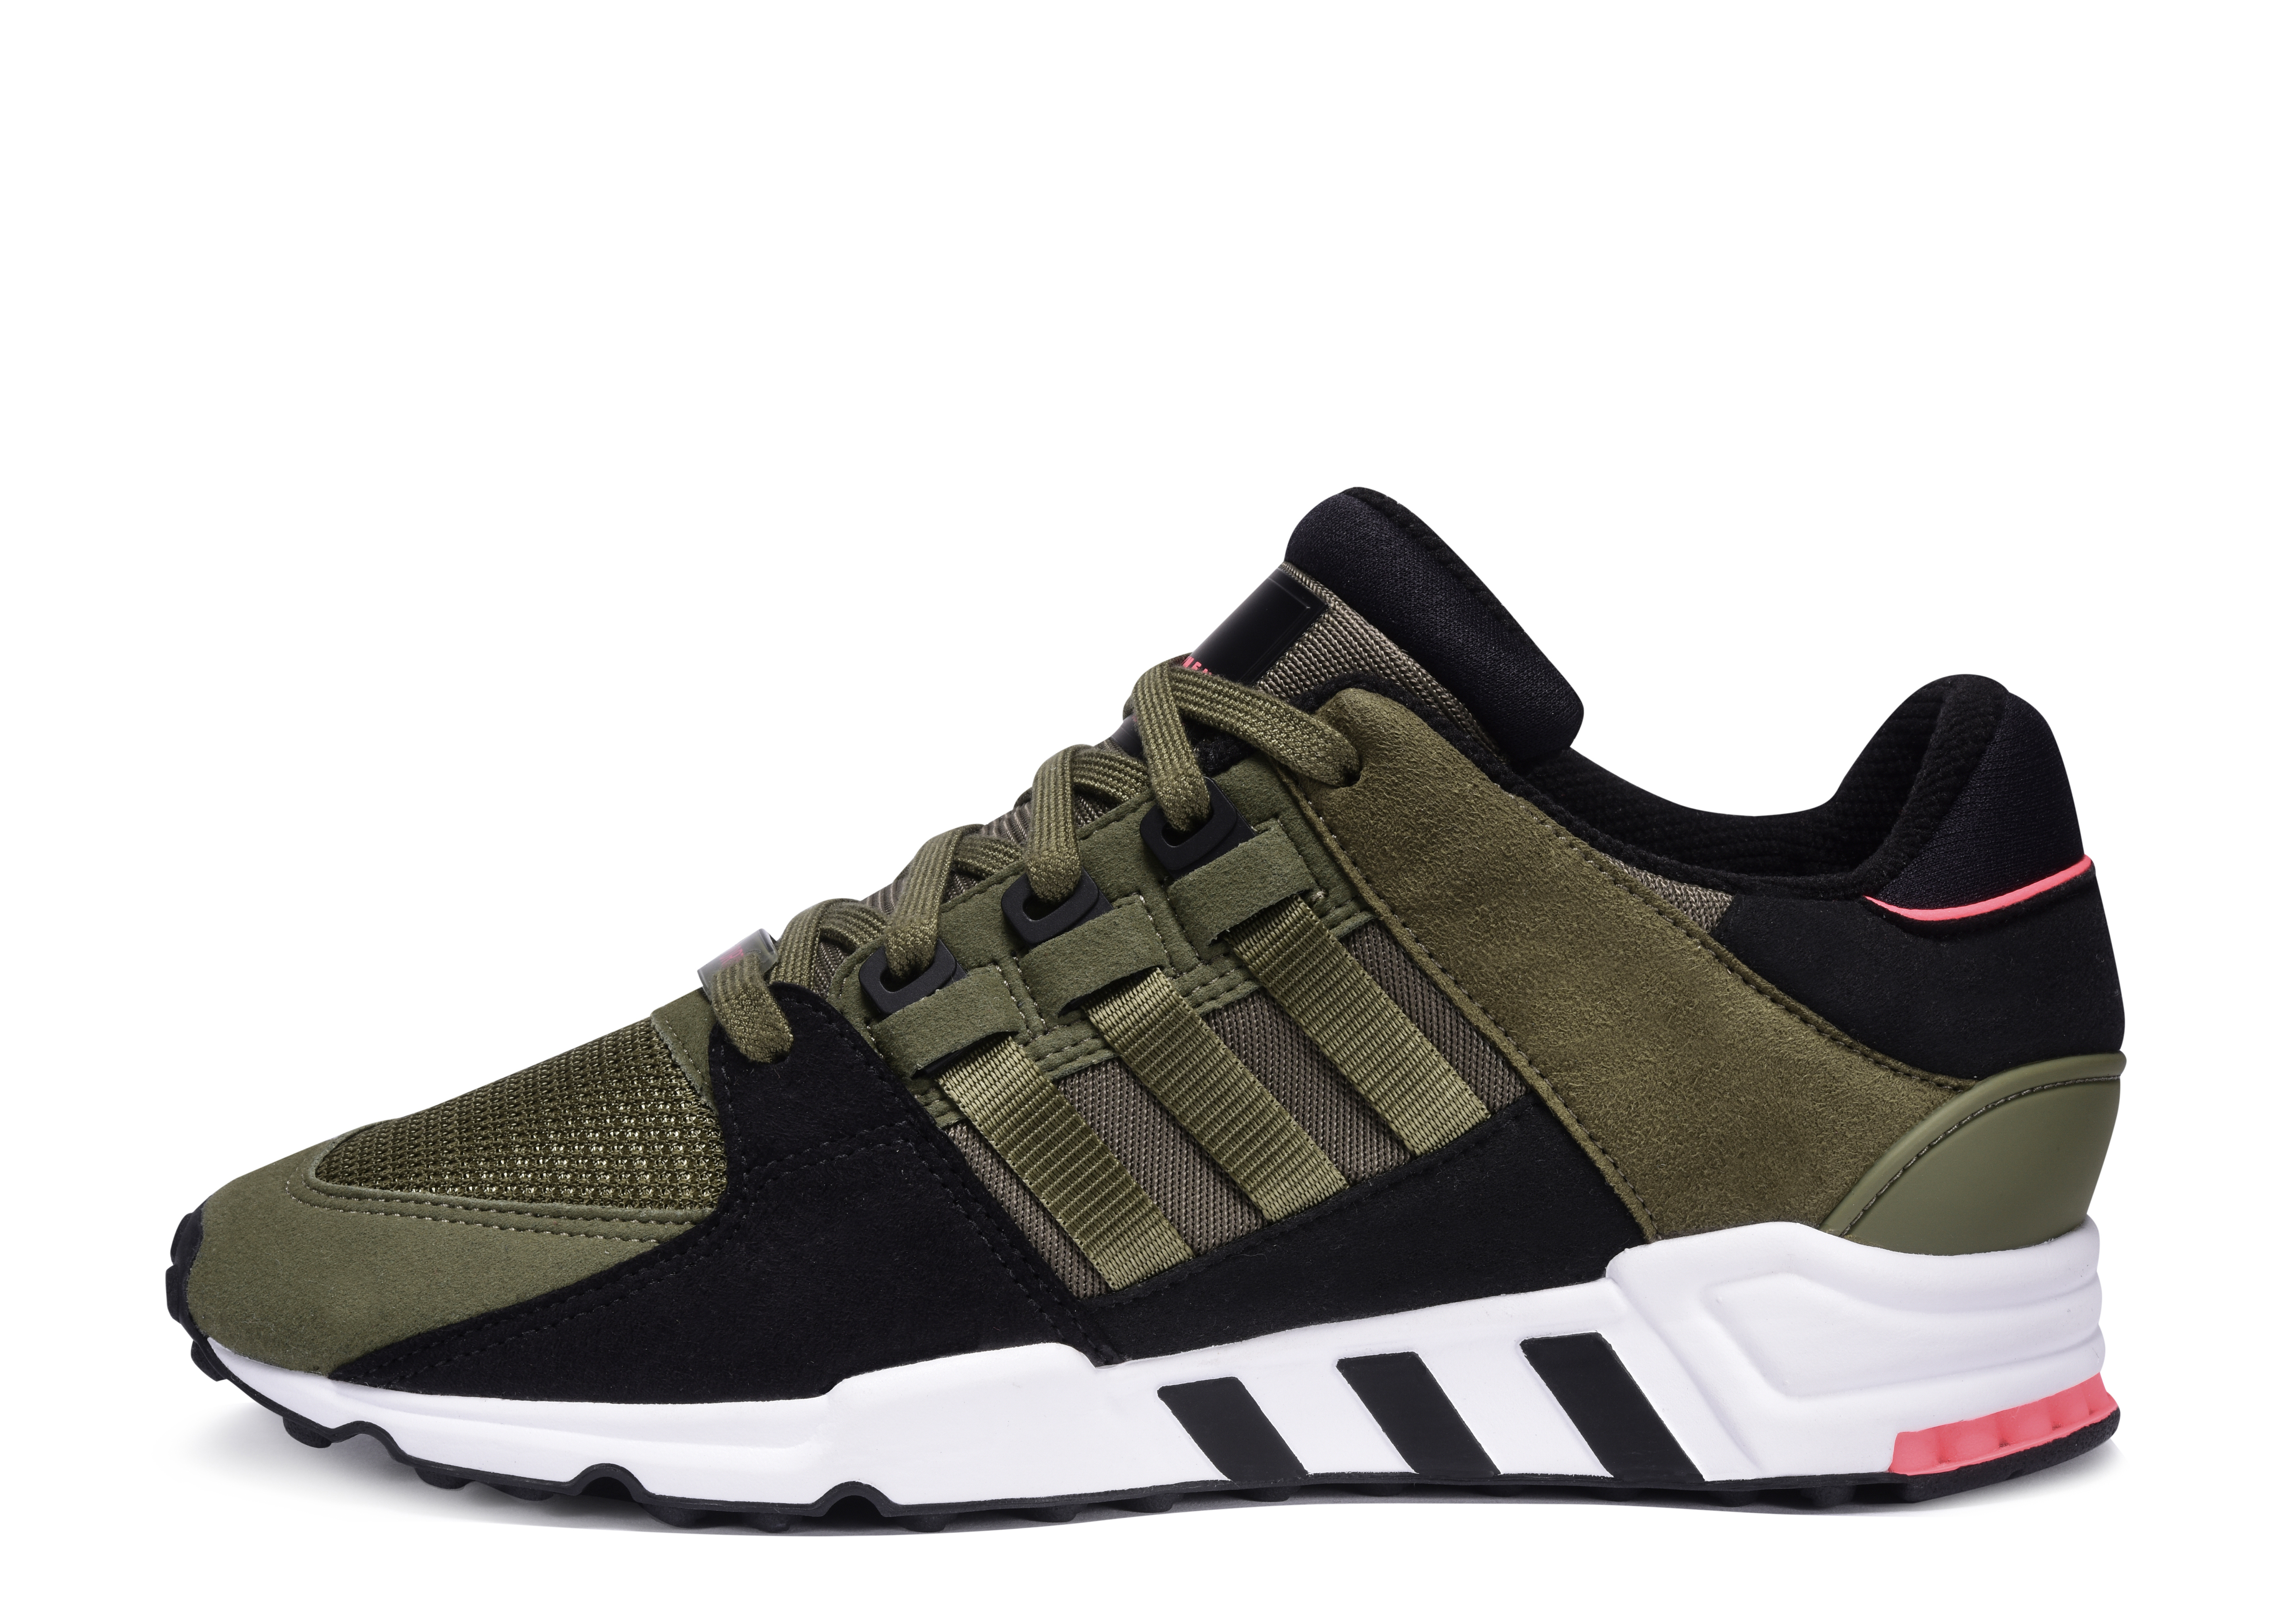 adidas EQT Support Olive CRG Black